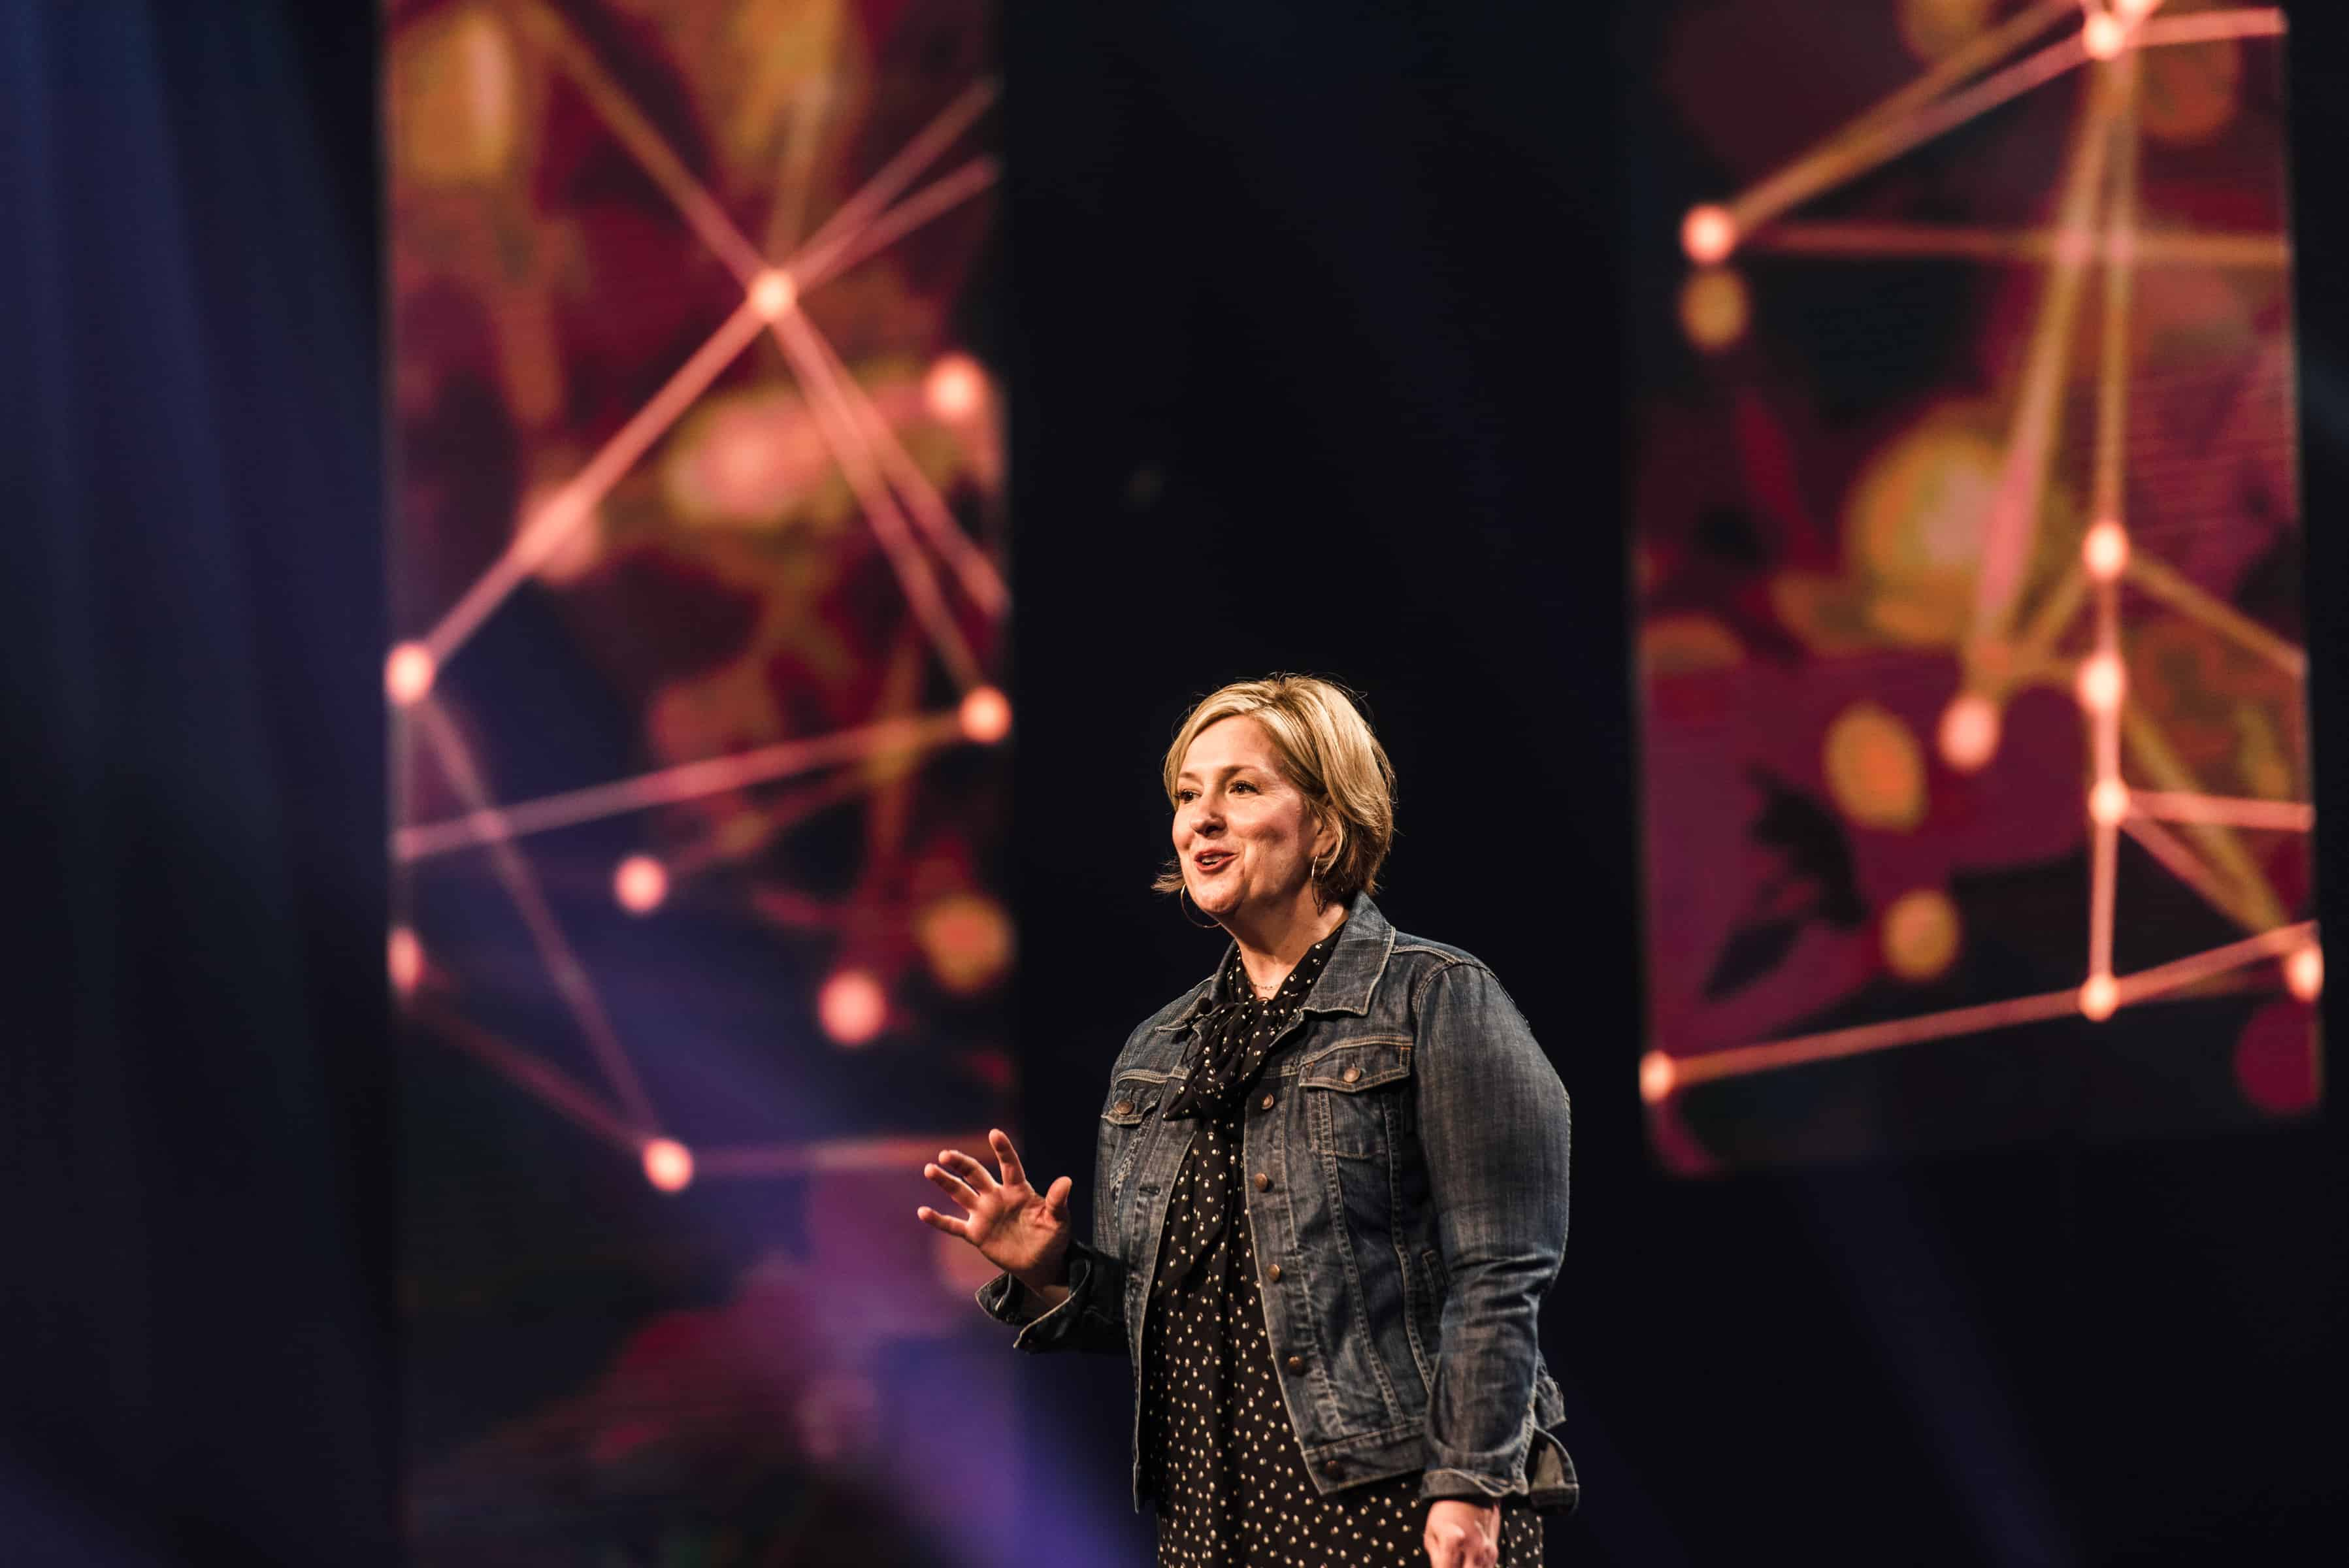 Leadership lessons from Brene Brown